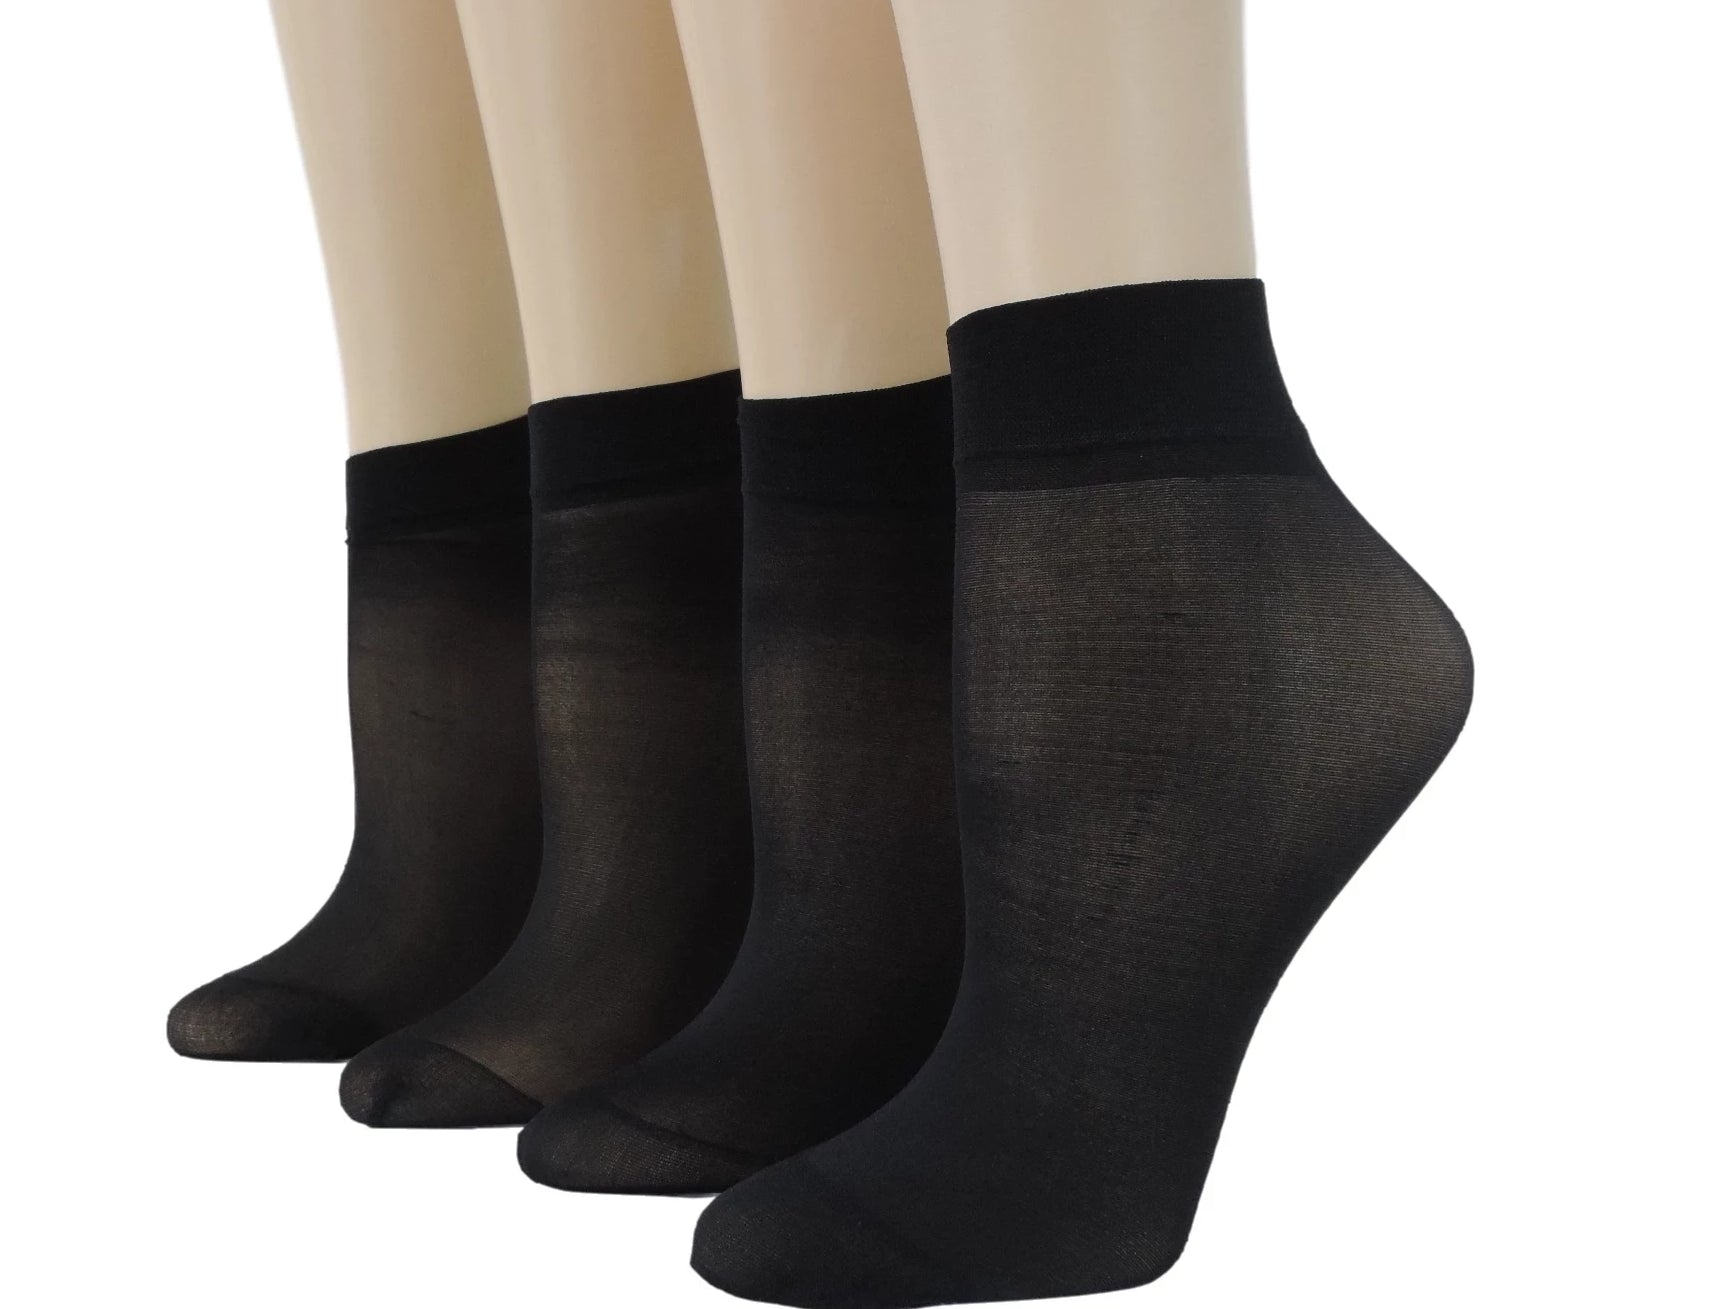 Cute Black Nylon Socks (Pack of 10 pairs) - Global Trendz Fashion®